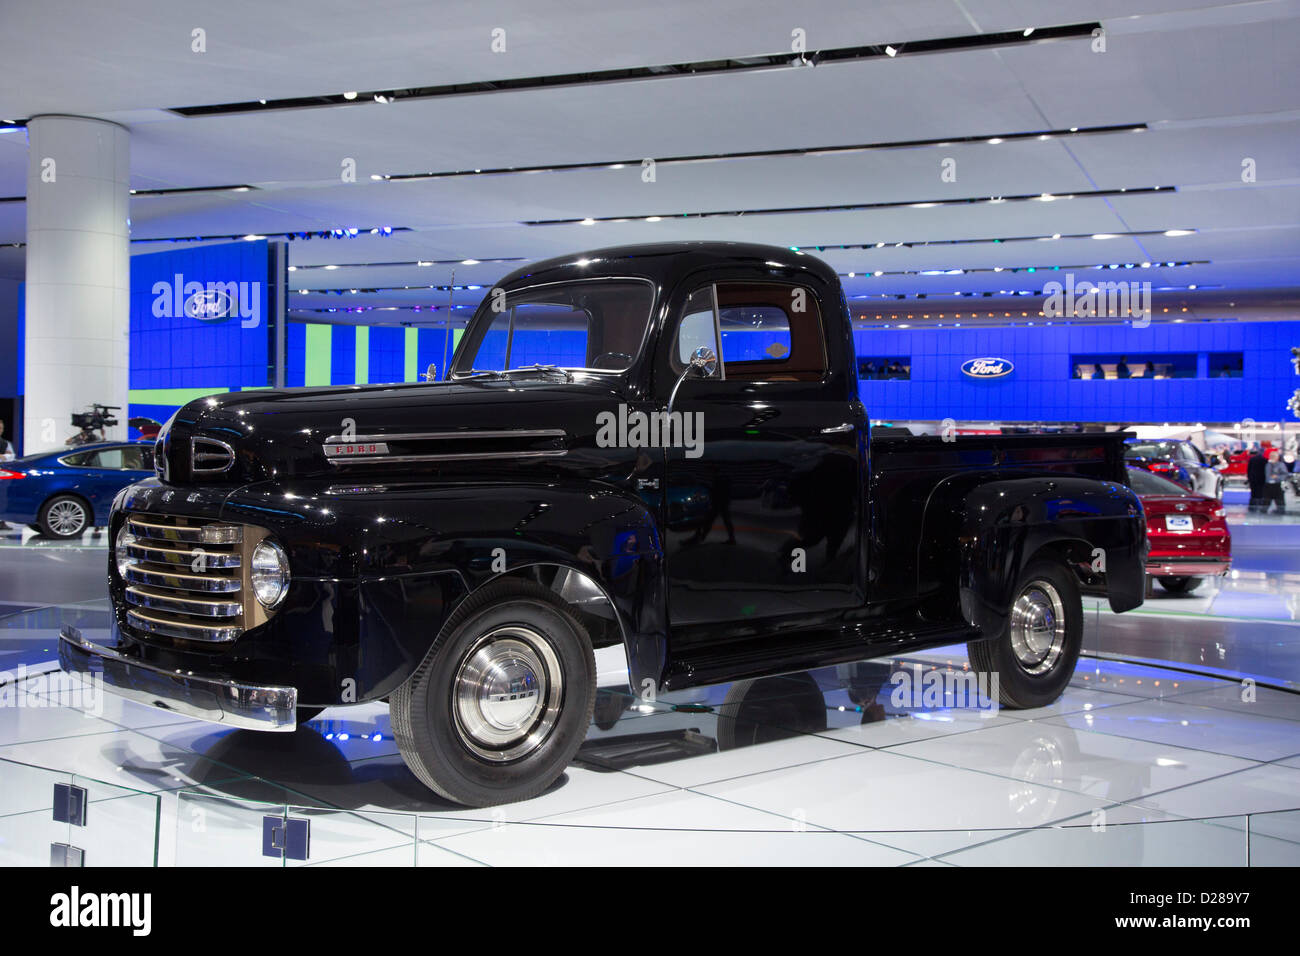 American Ford Truck Stock Photos Images 1948 Grain A F 1 Pickup On Display At The North International Auto